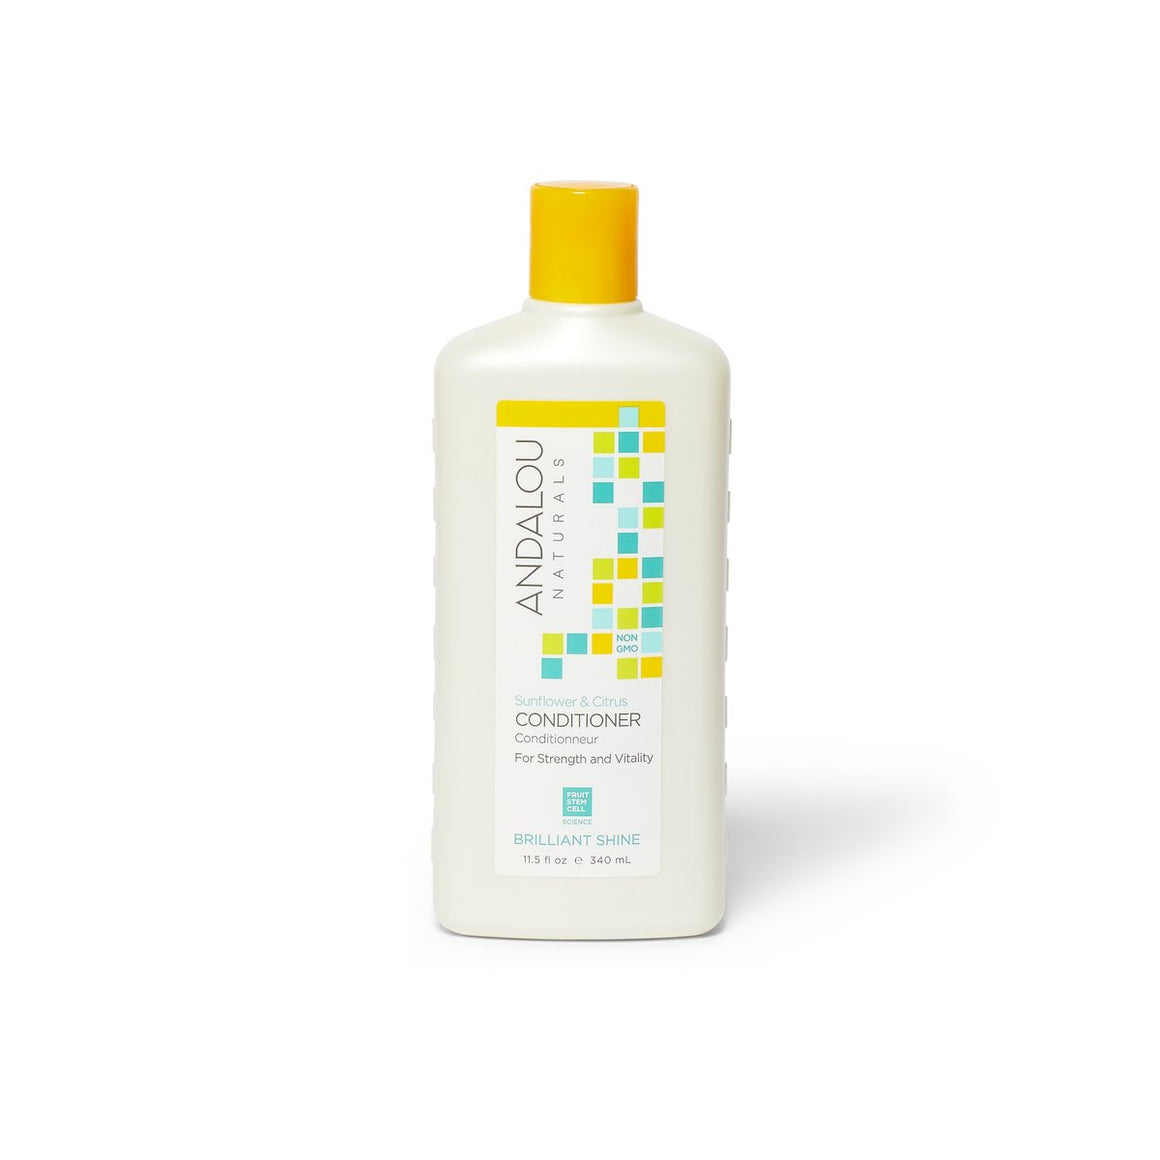 Sunflower & Citrus Brilliant Shine Conditioner - Andalou Naturals